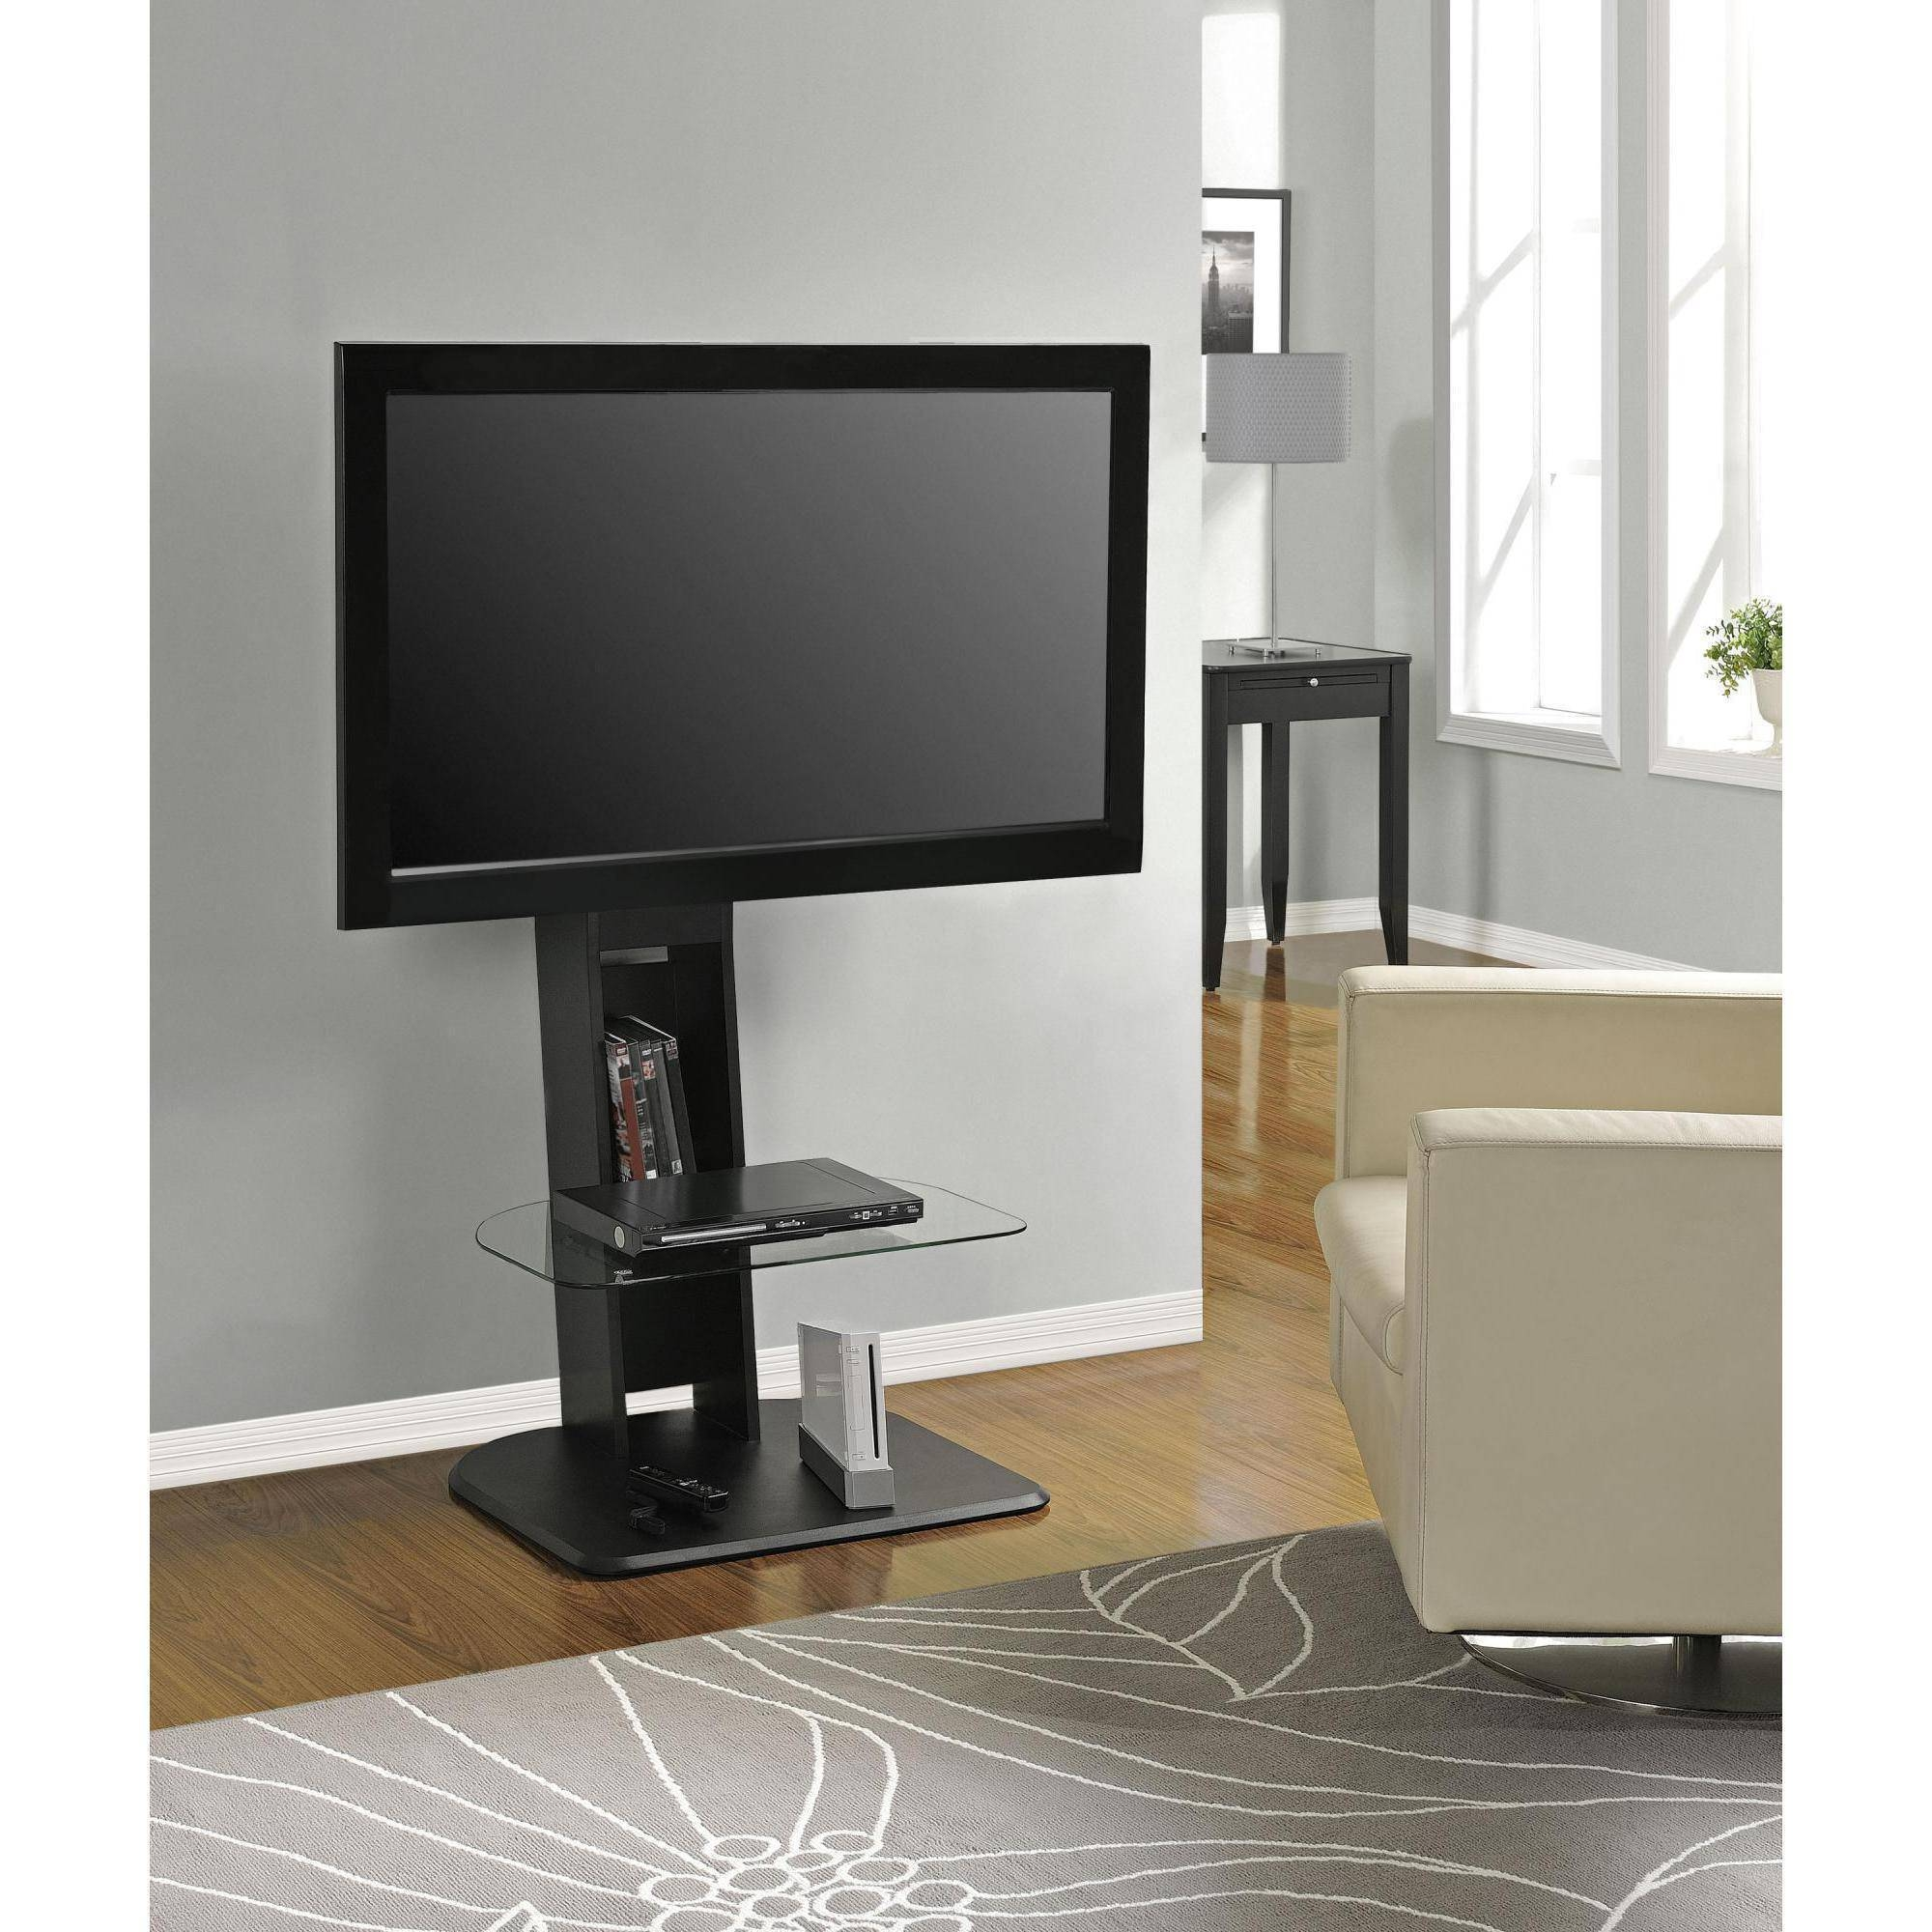 "Techni Mobili Durbin Tv Cabinet For Tvs Up To 65"", Espresso in Corner Tv Stands for 60 Inch Flat Screens (Image 12 of 15)"